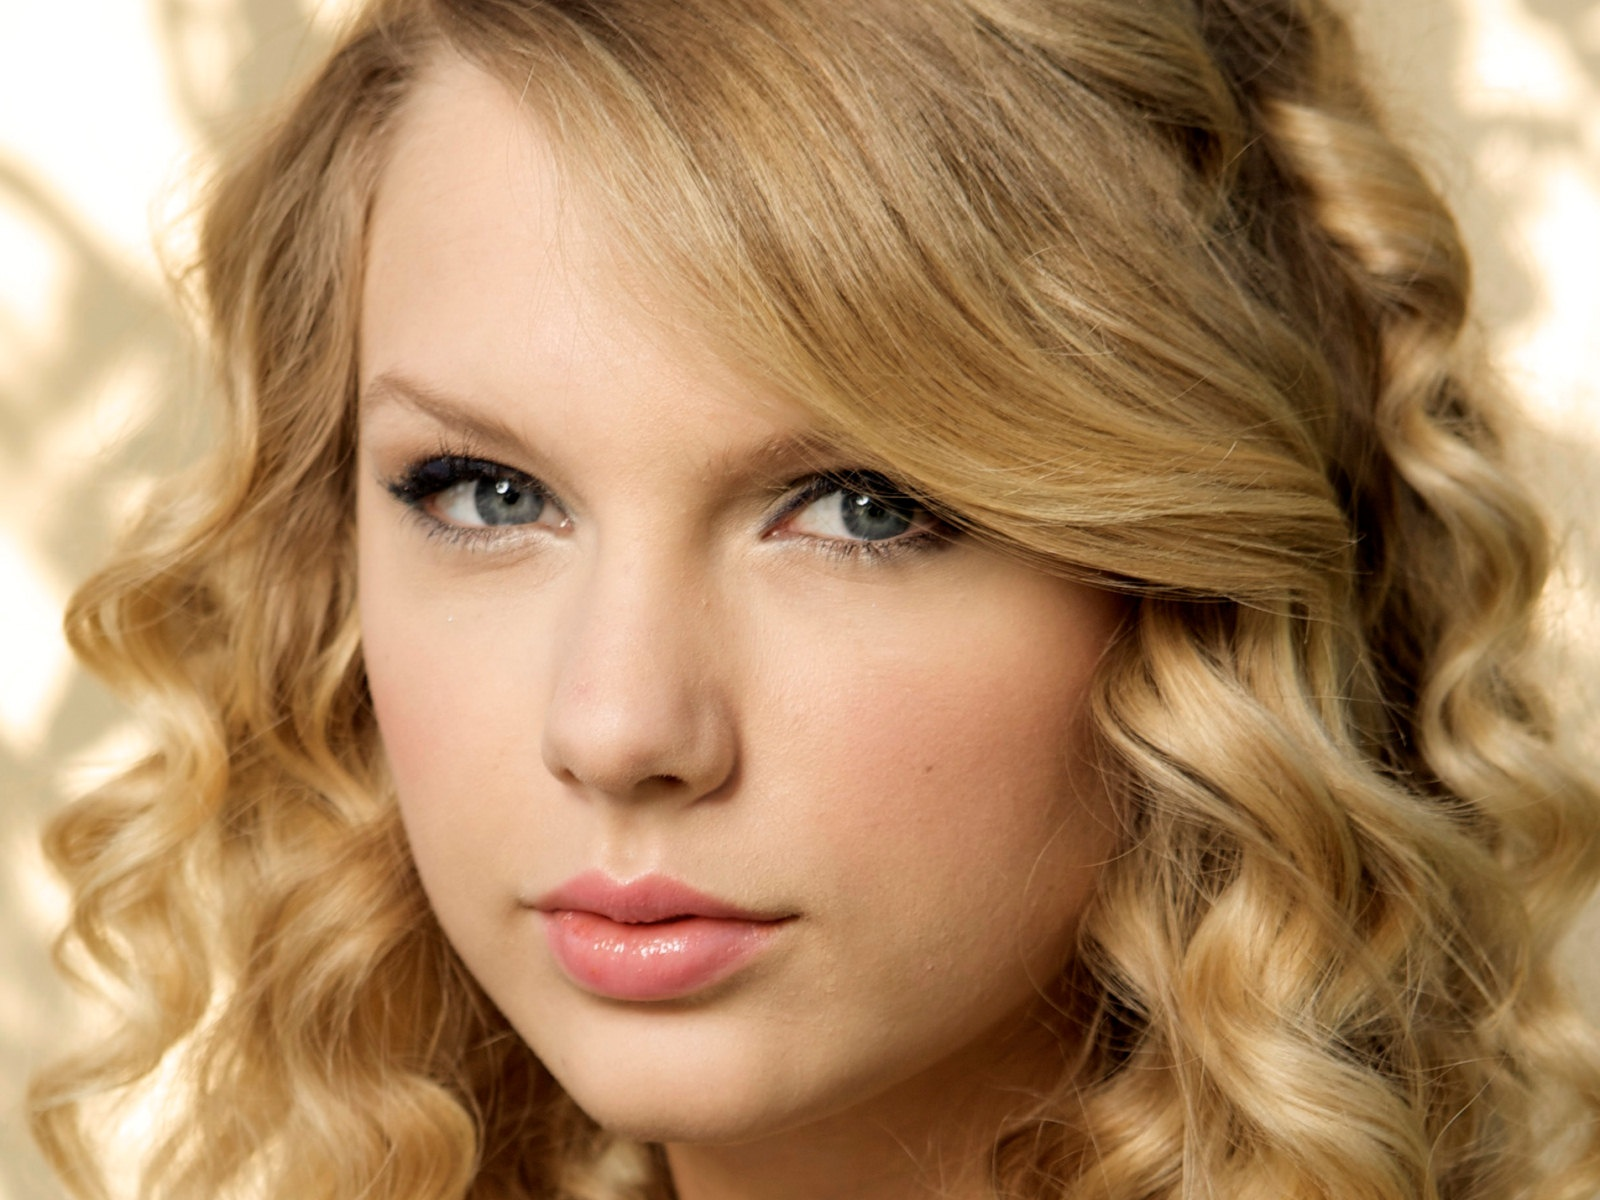 http://4.bp.blogspot.com/-z7f466inPj4/TmJnuxRNunI/AAAAAAAAFUY/8hwdviosIQs/s1600/The-best-top-desktop-taylor-swift-wallpapers-taylor-swift-wallpaper-taylor-swift-background-hd-9.jpg